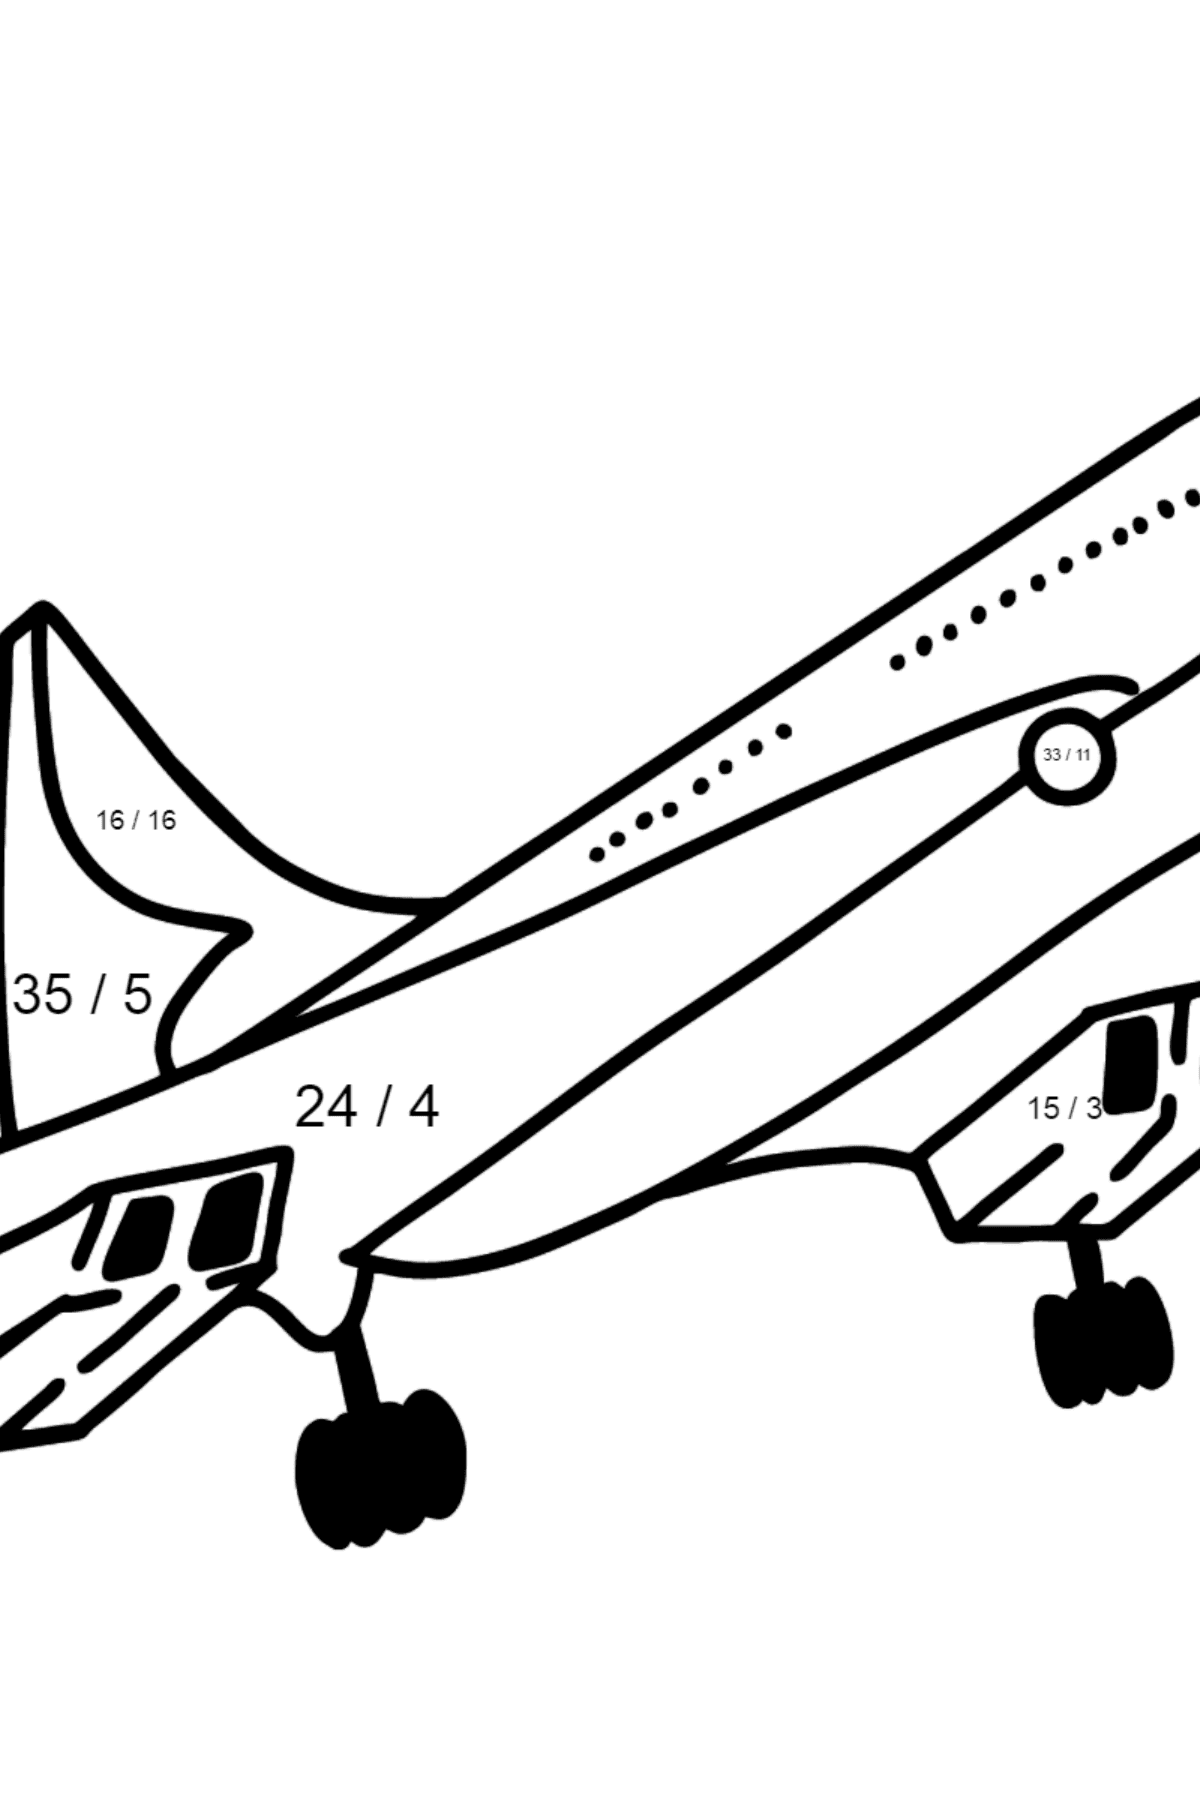 Concorde coloring page - Math Coloring - Division for Kids